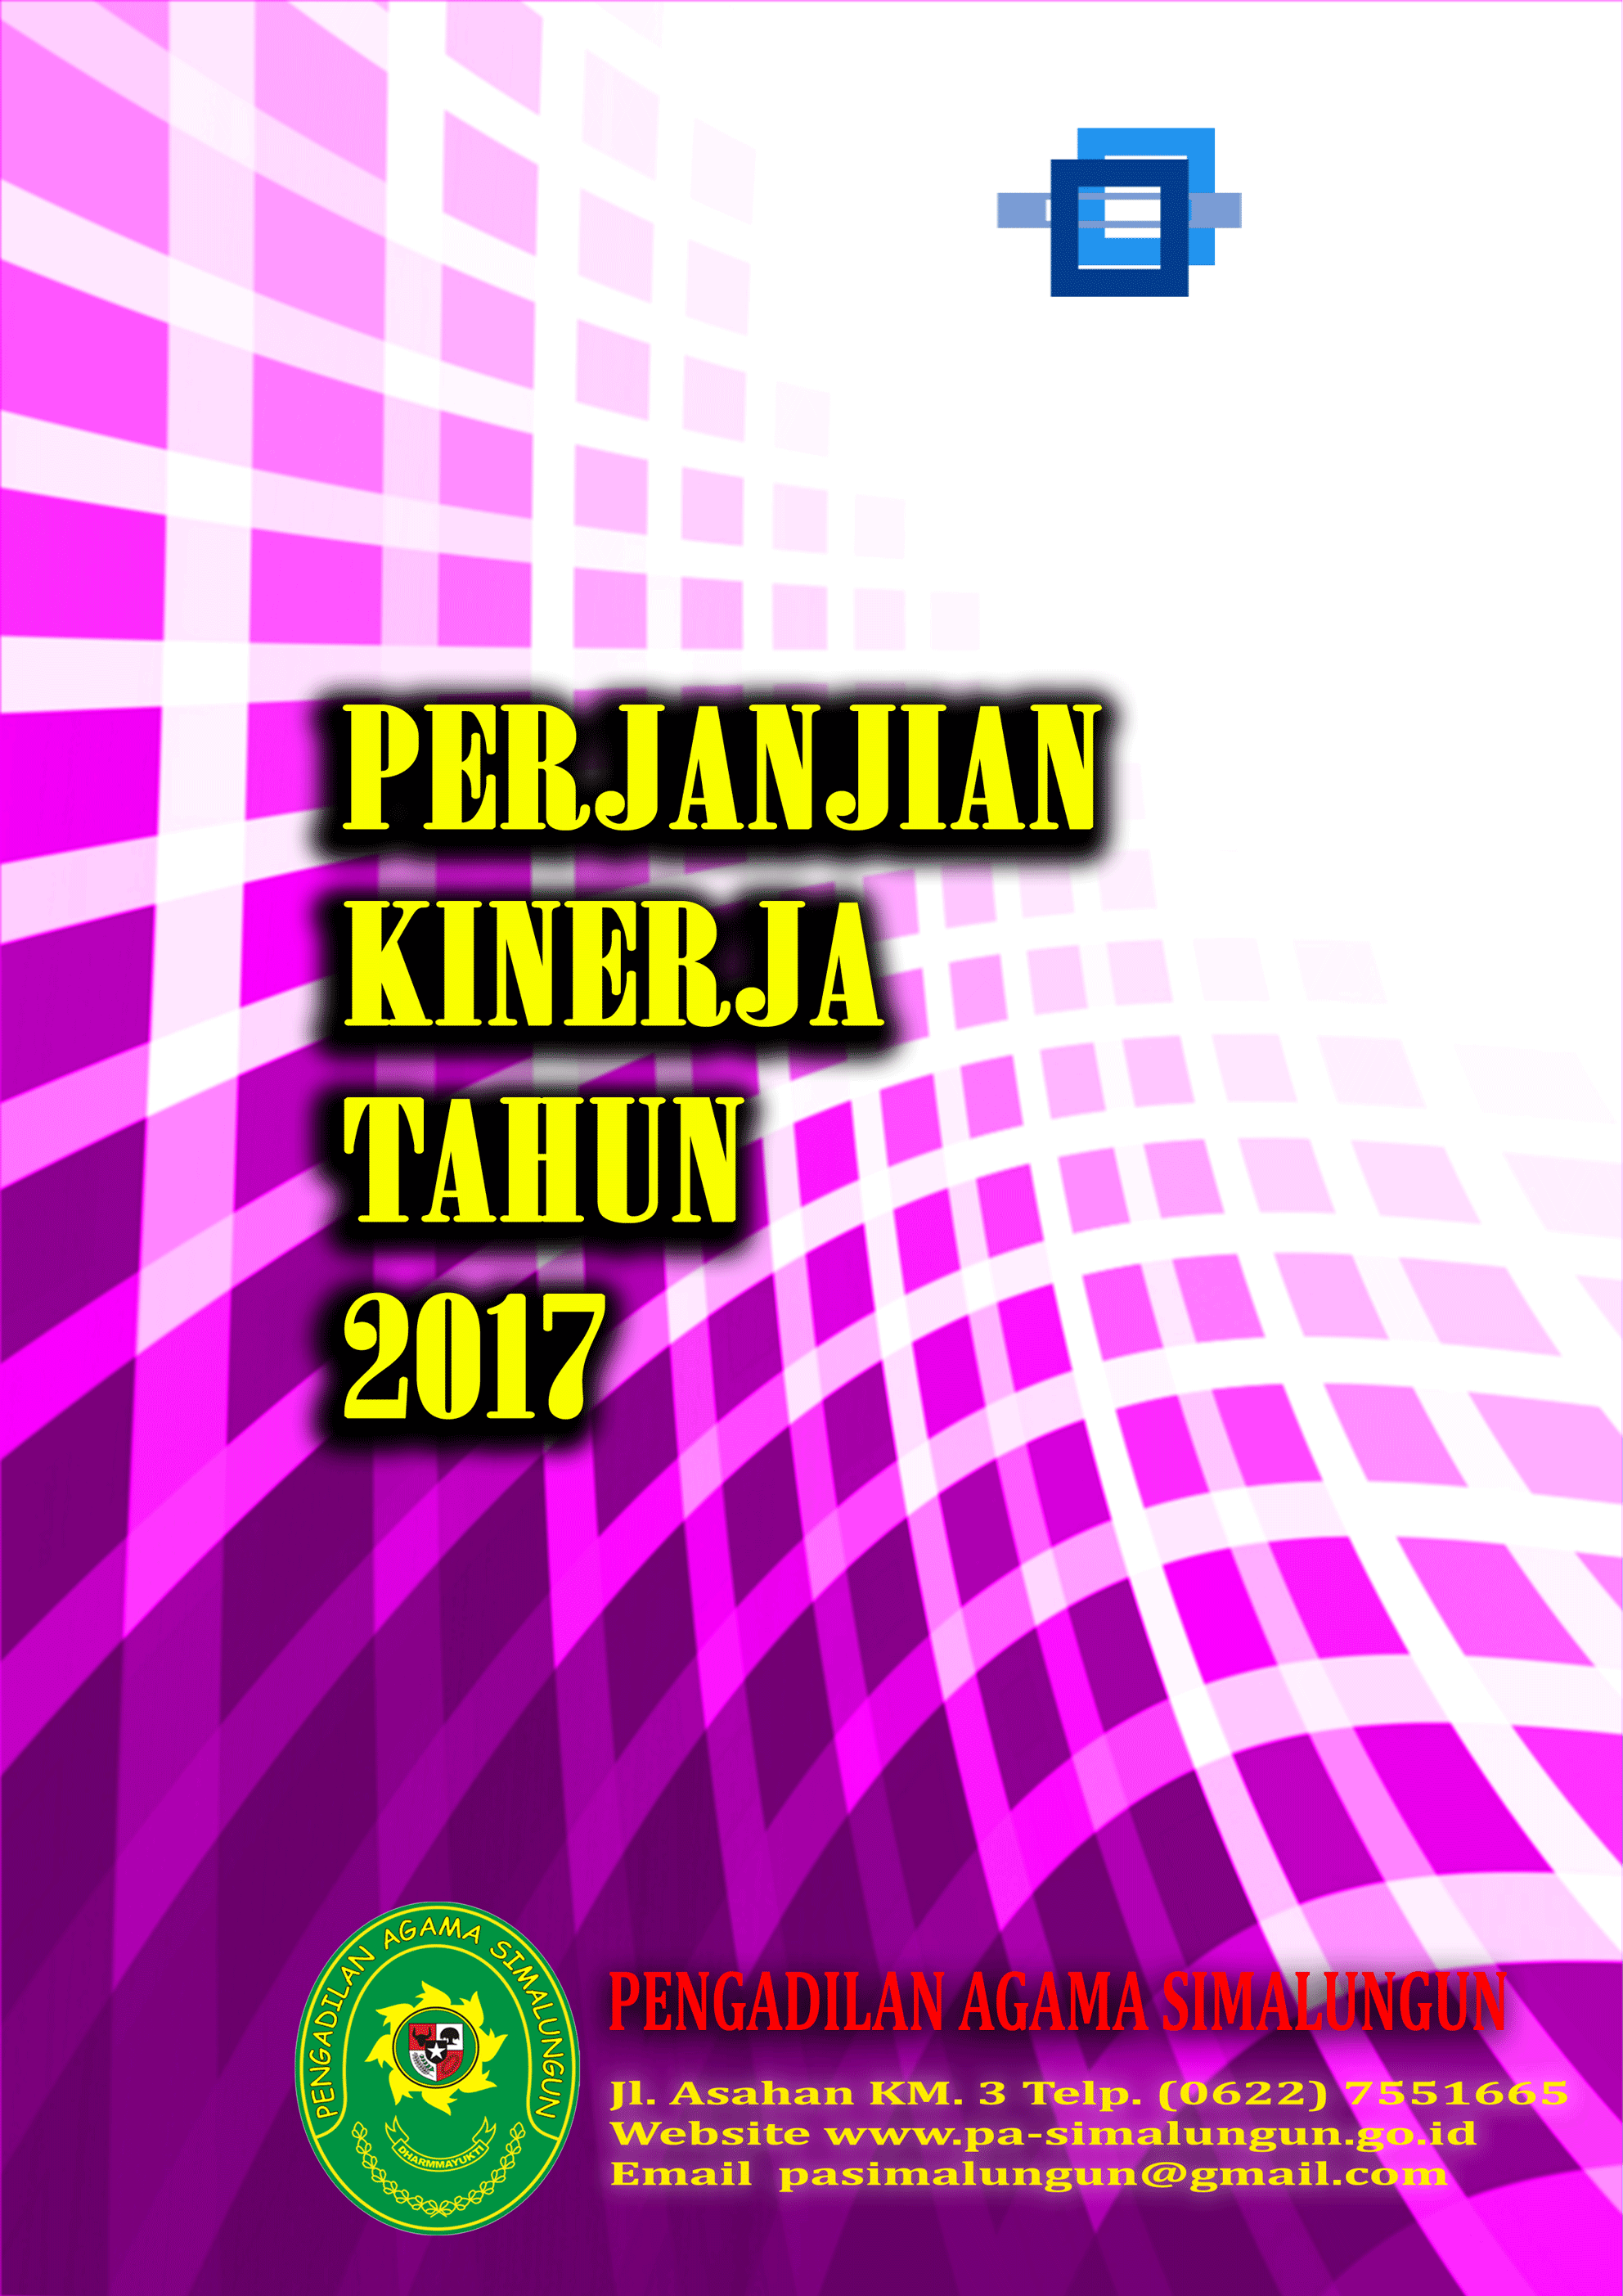 COVER PK 2017